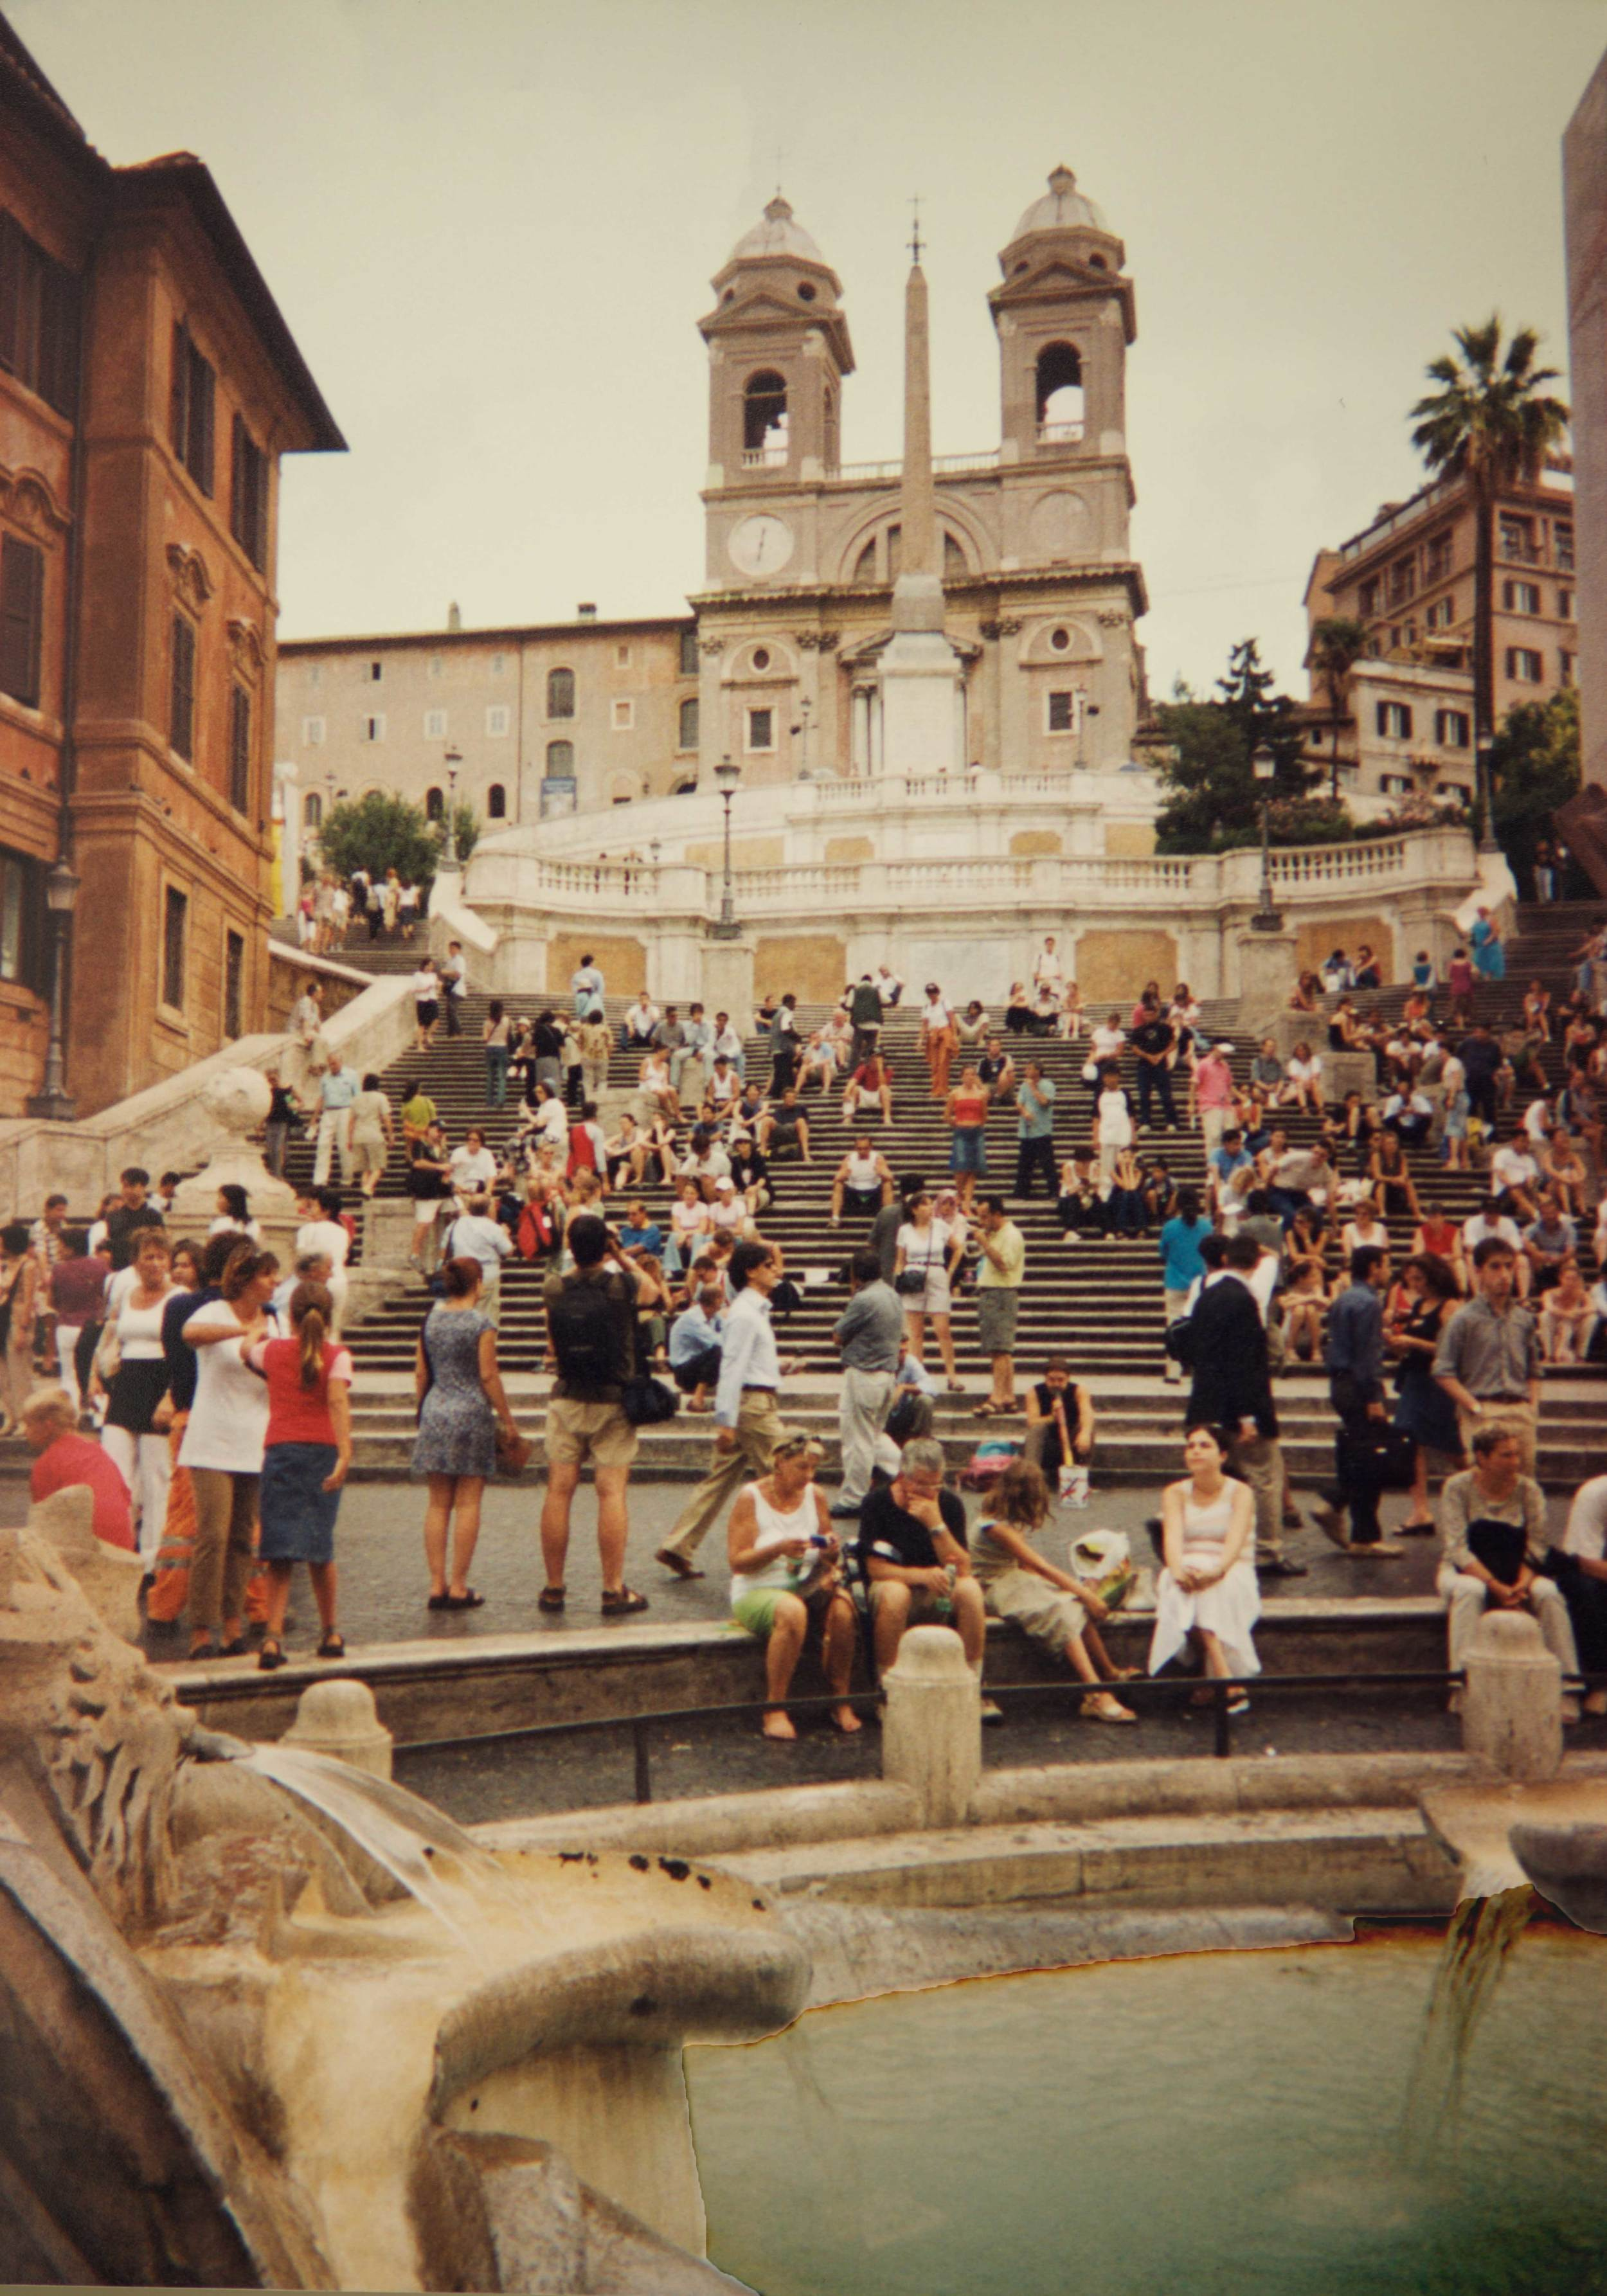 The Spanish Steps, Rome, Italy. Image©sourcingstyle.com